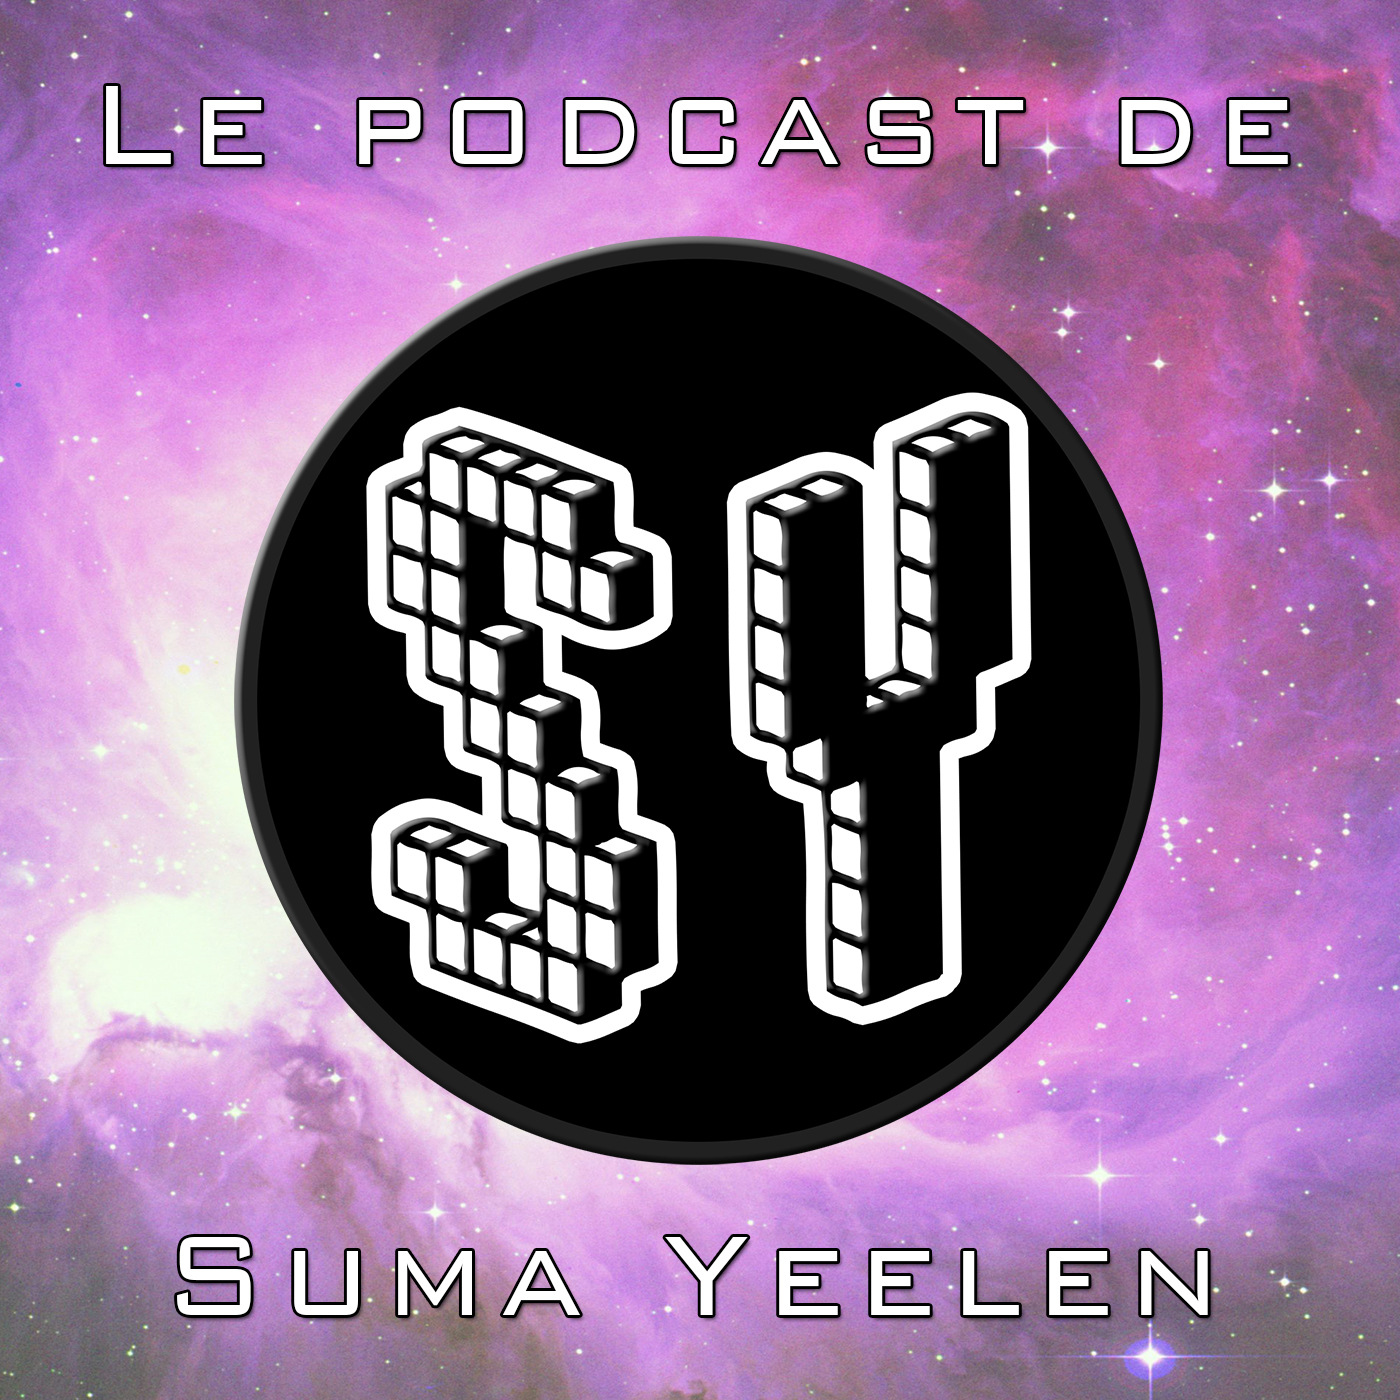 Le podcast de la rédaction de Suma Yeelen